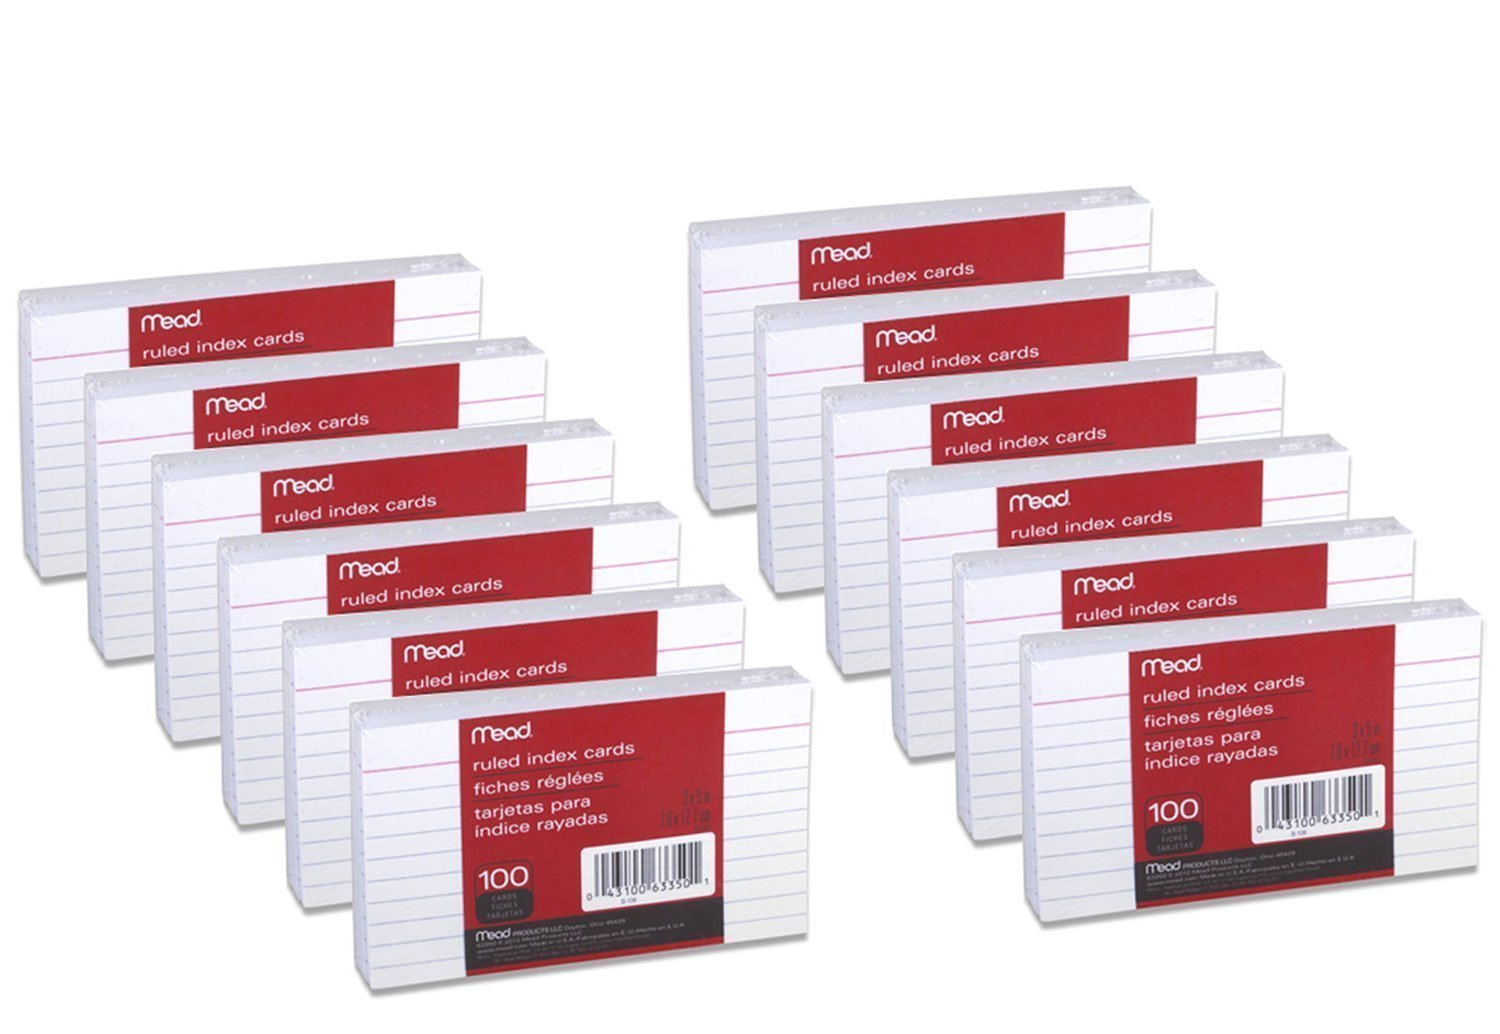 24 Pack of Mead 3 x 5-Inch Index Cards, Ruled, 100 Count, White (63350) = to 2,400 cards